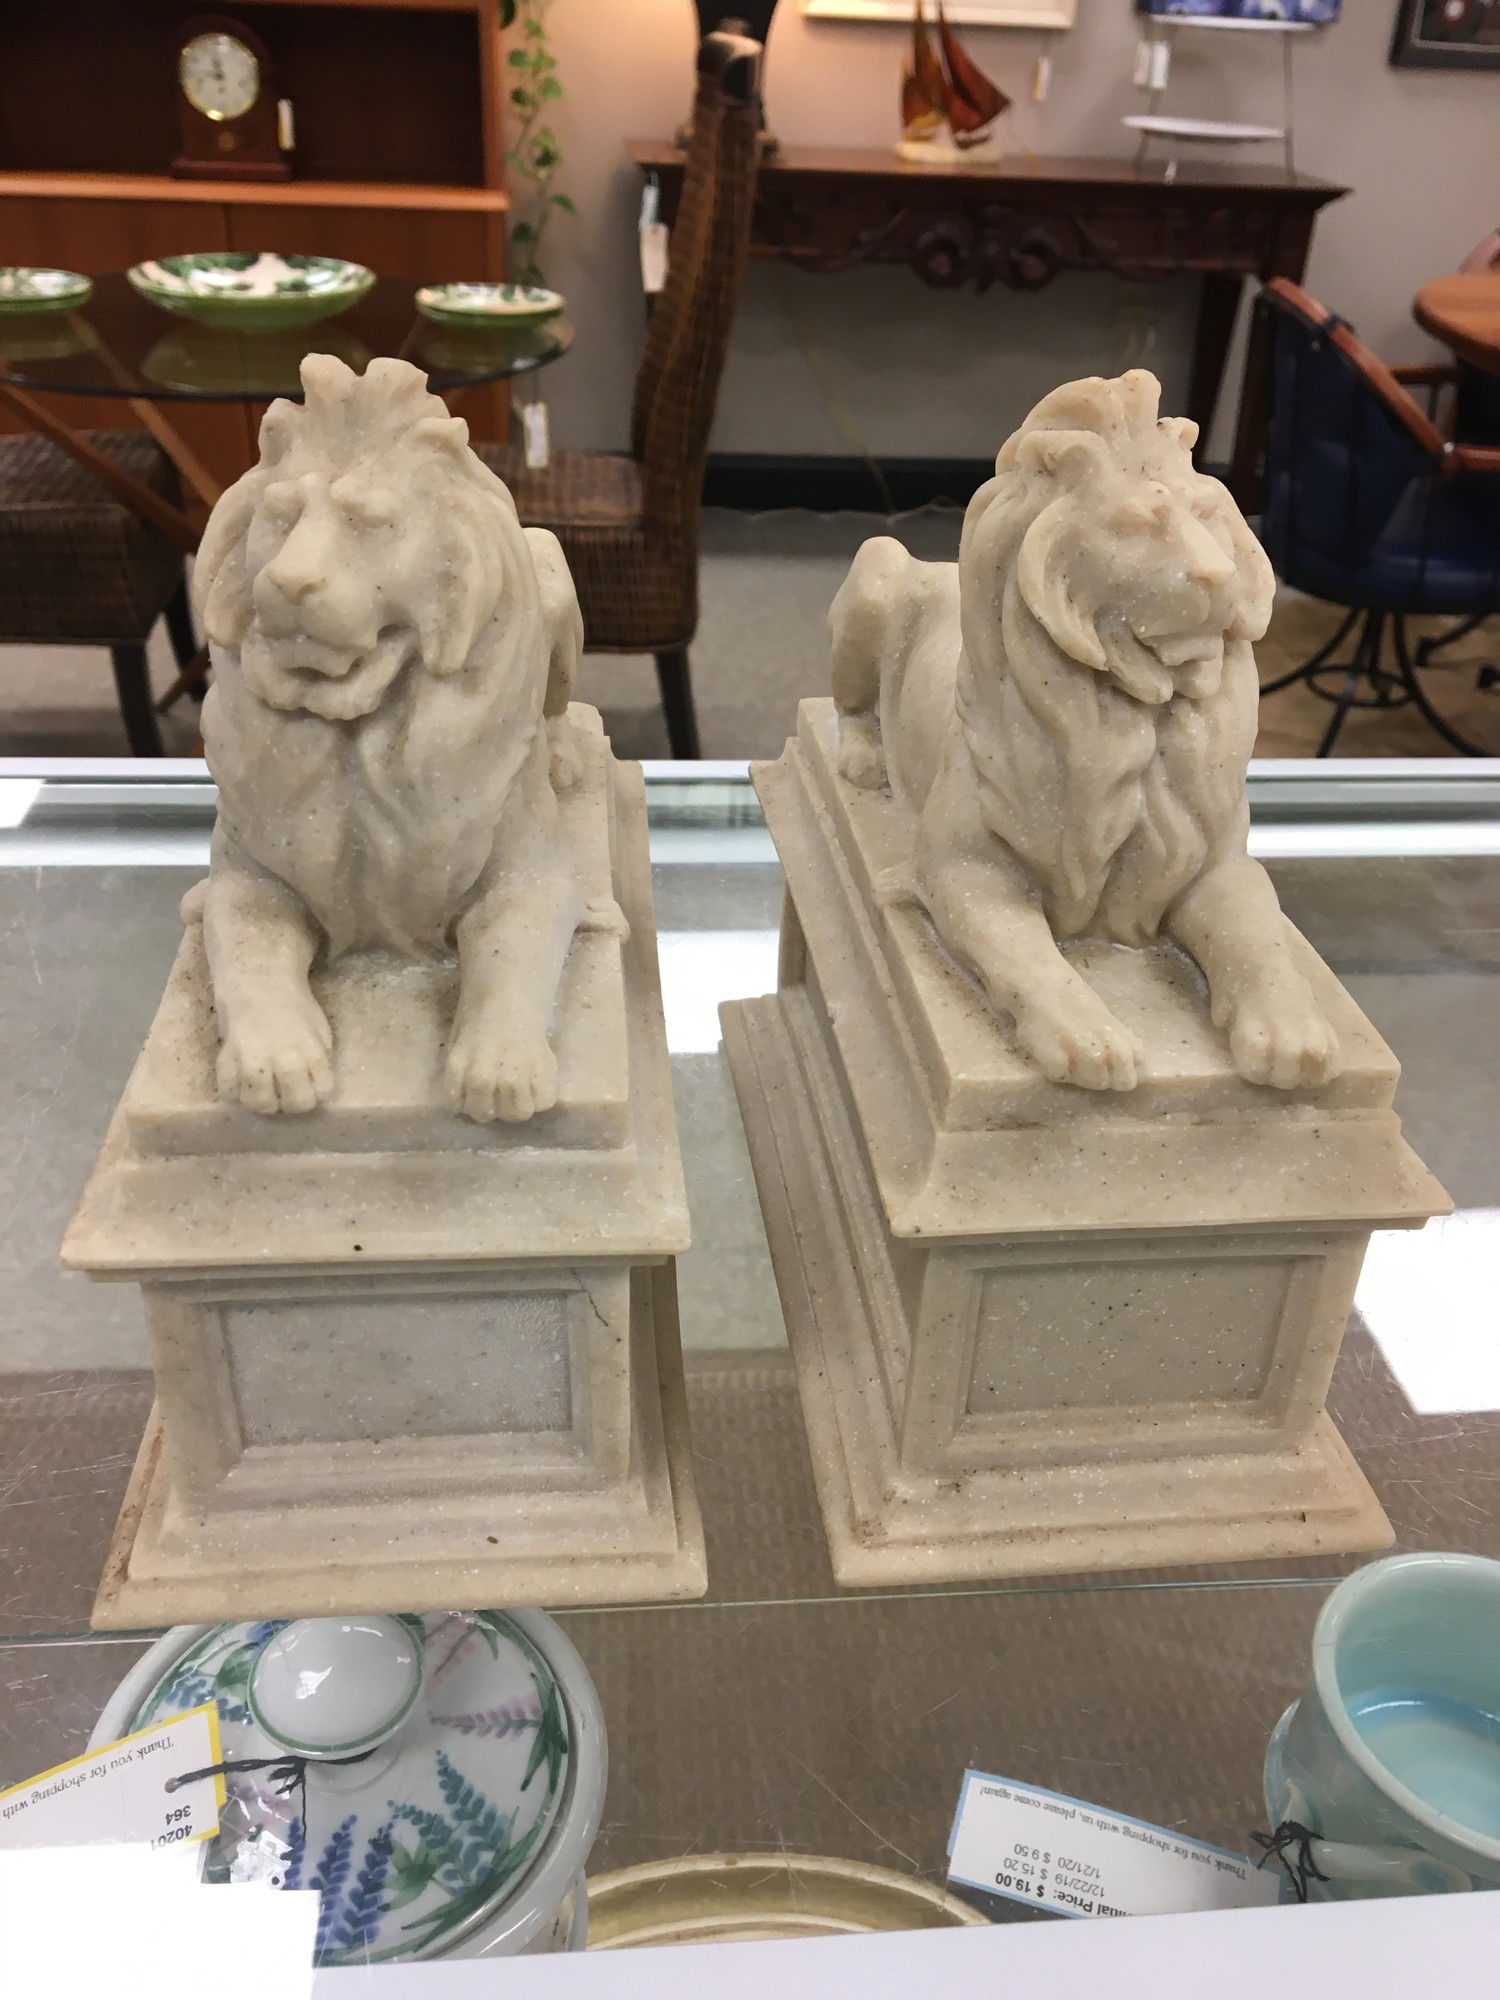 NY Library Lions In Grani, Beige, Size: 8x8 In